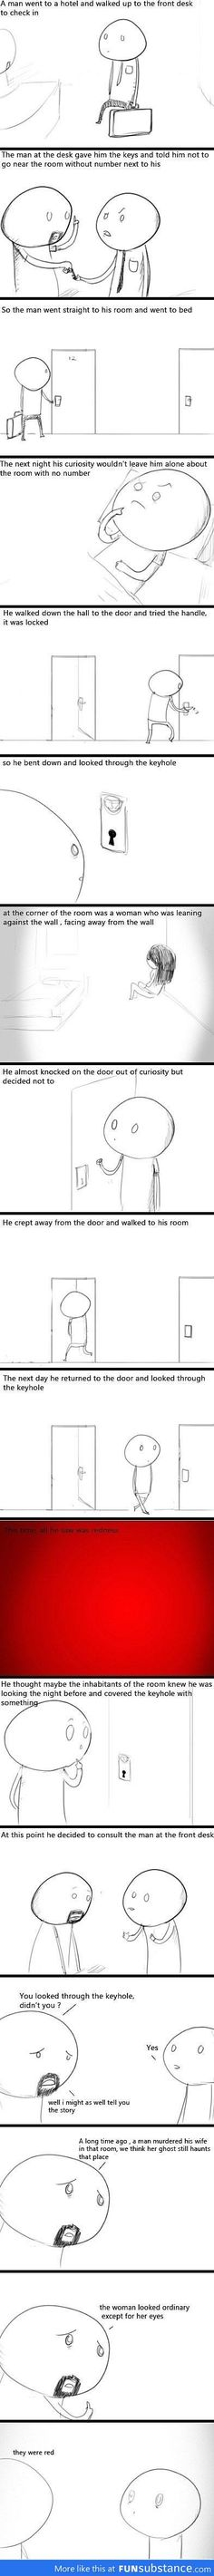 The first time I read this story, it was without the cartoons and I had trouble being alone at night